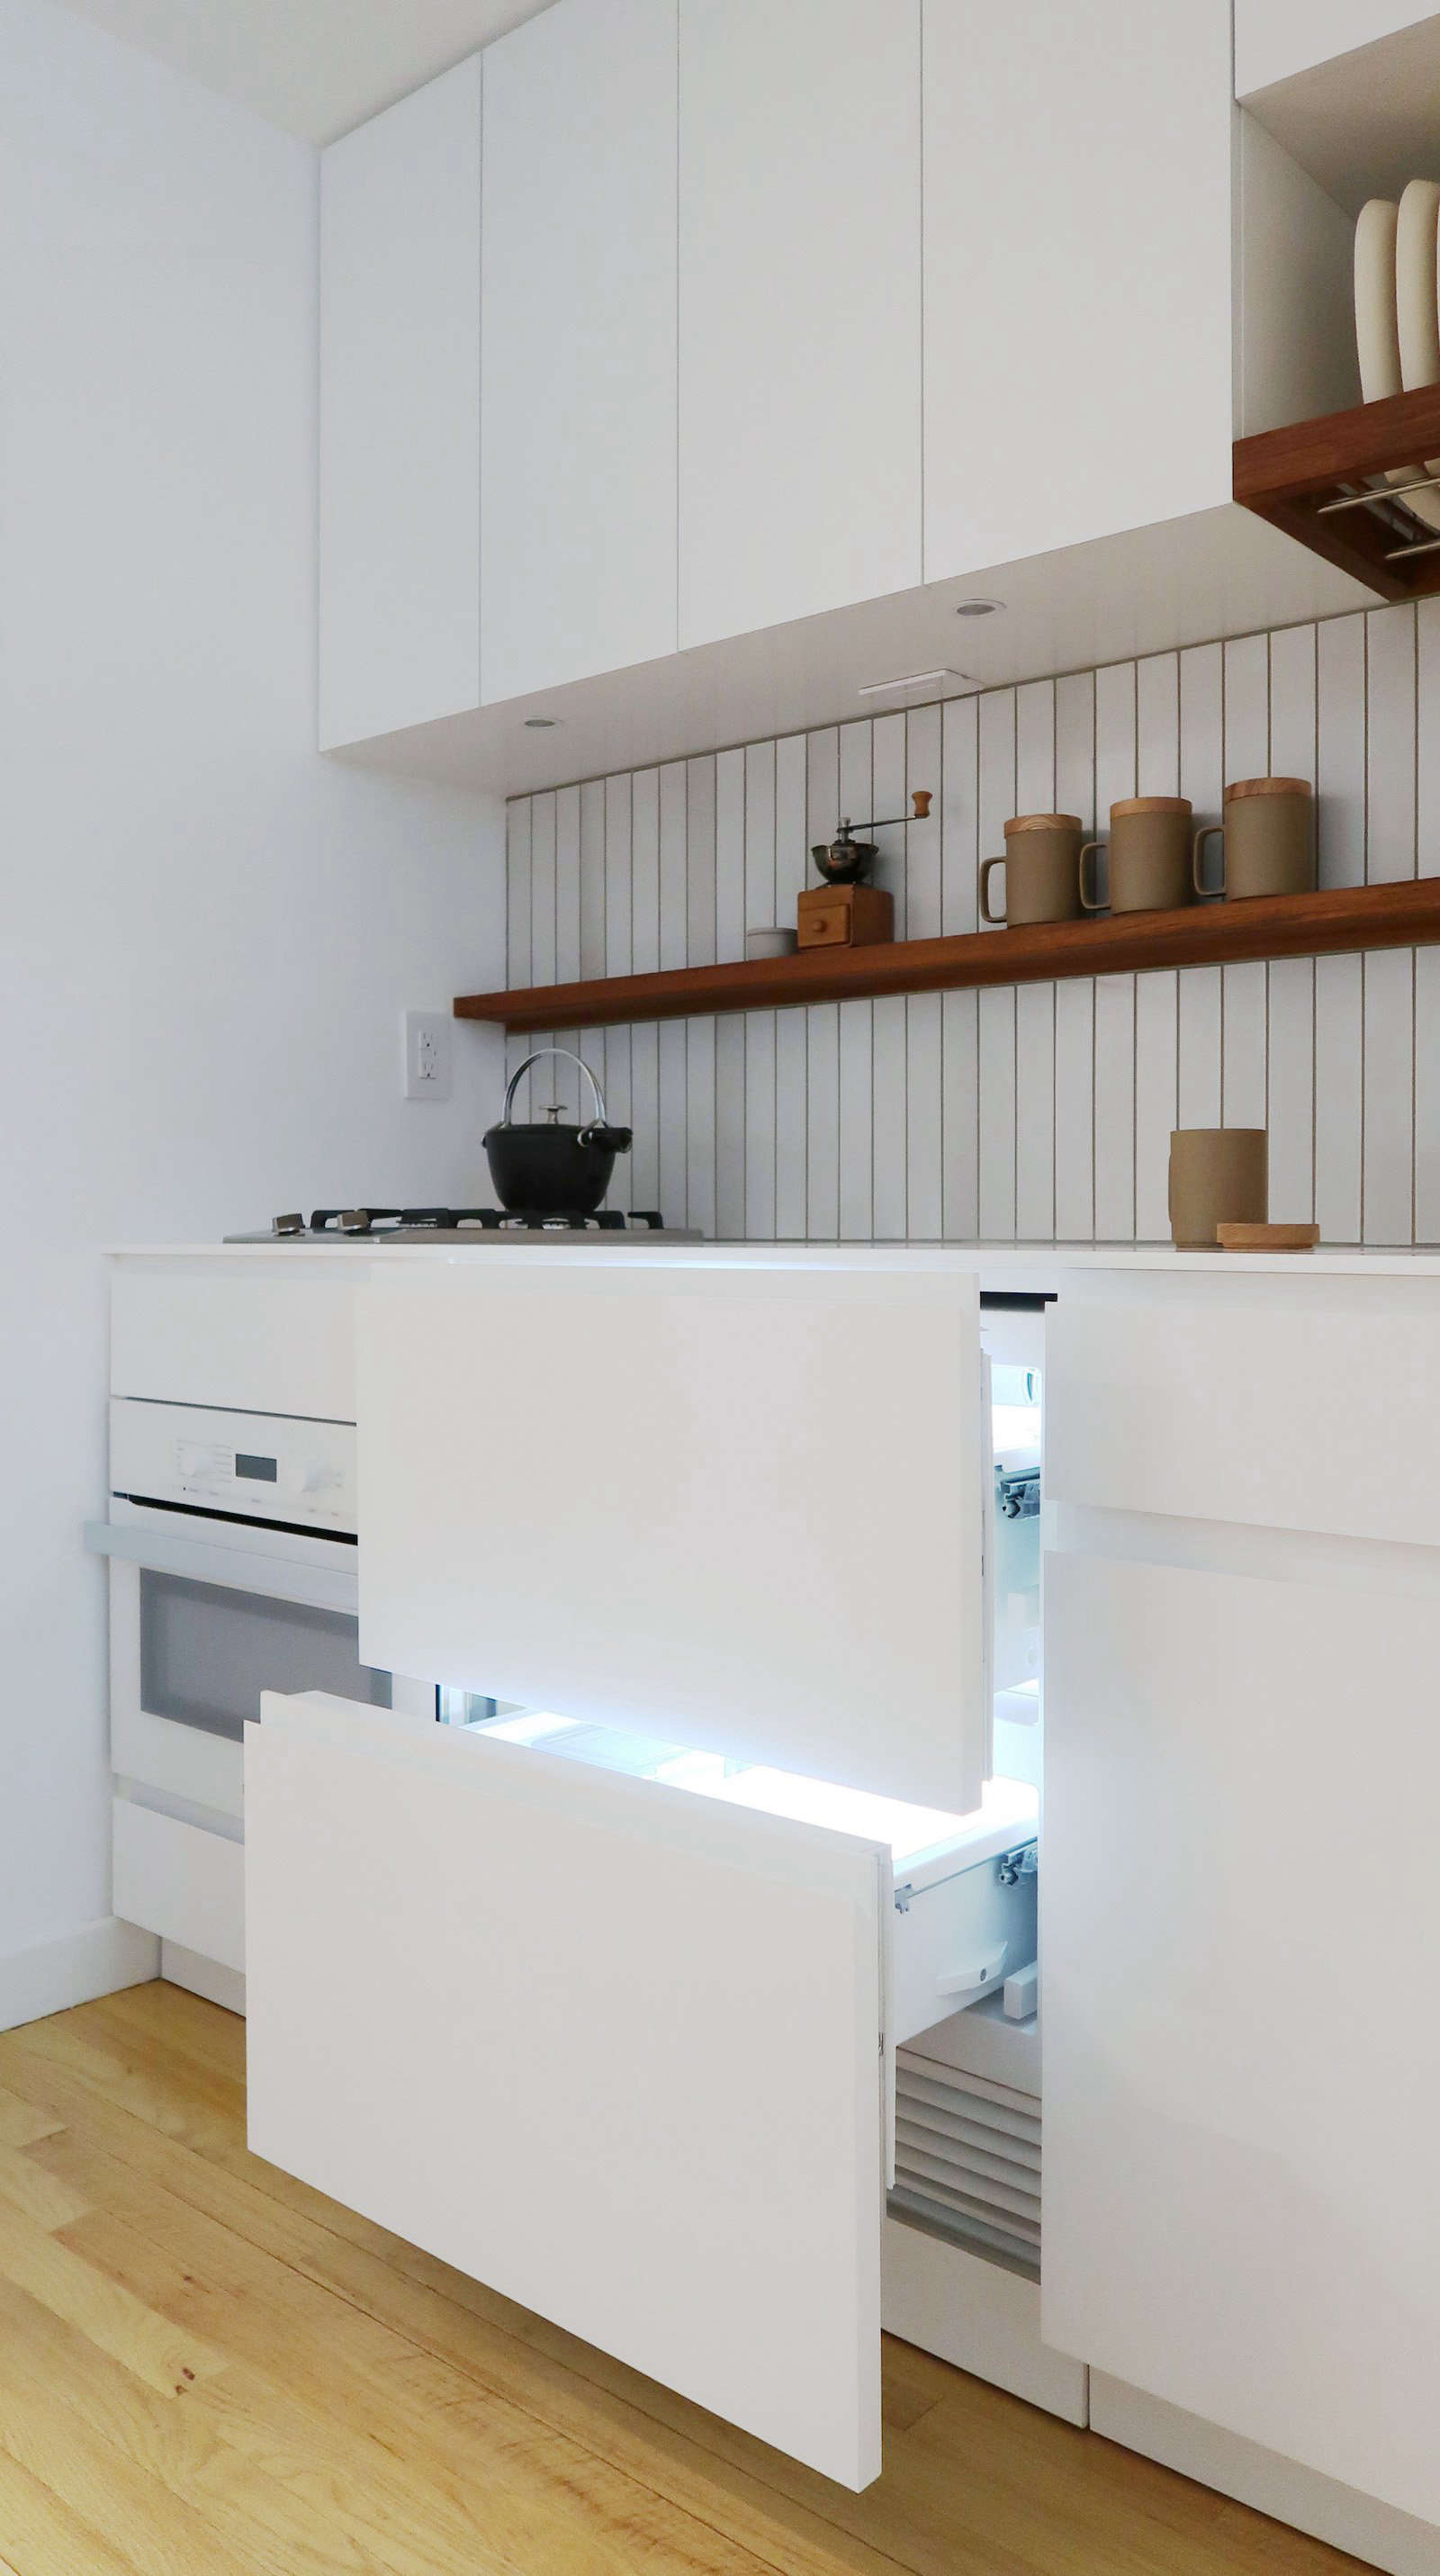 In the center of the kitchen is a 27-inch refrigerator drawer unit from Sub-Zero, with matching cabinet fronts.